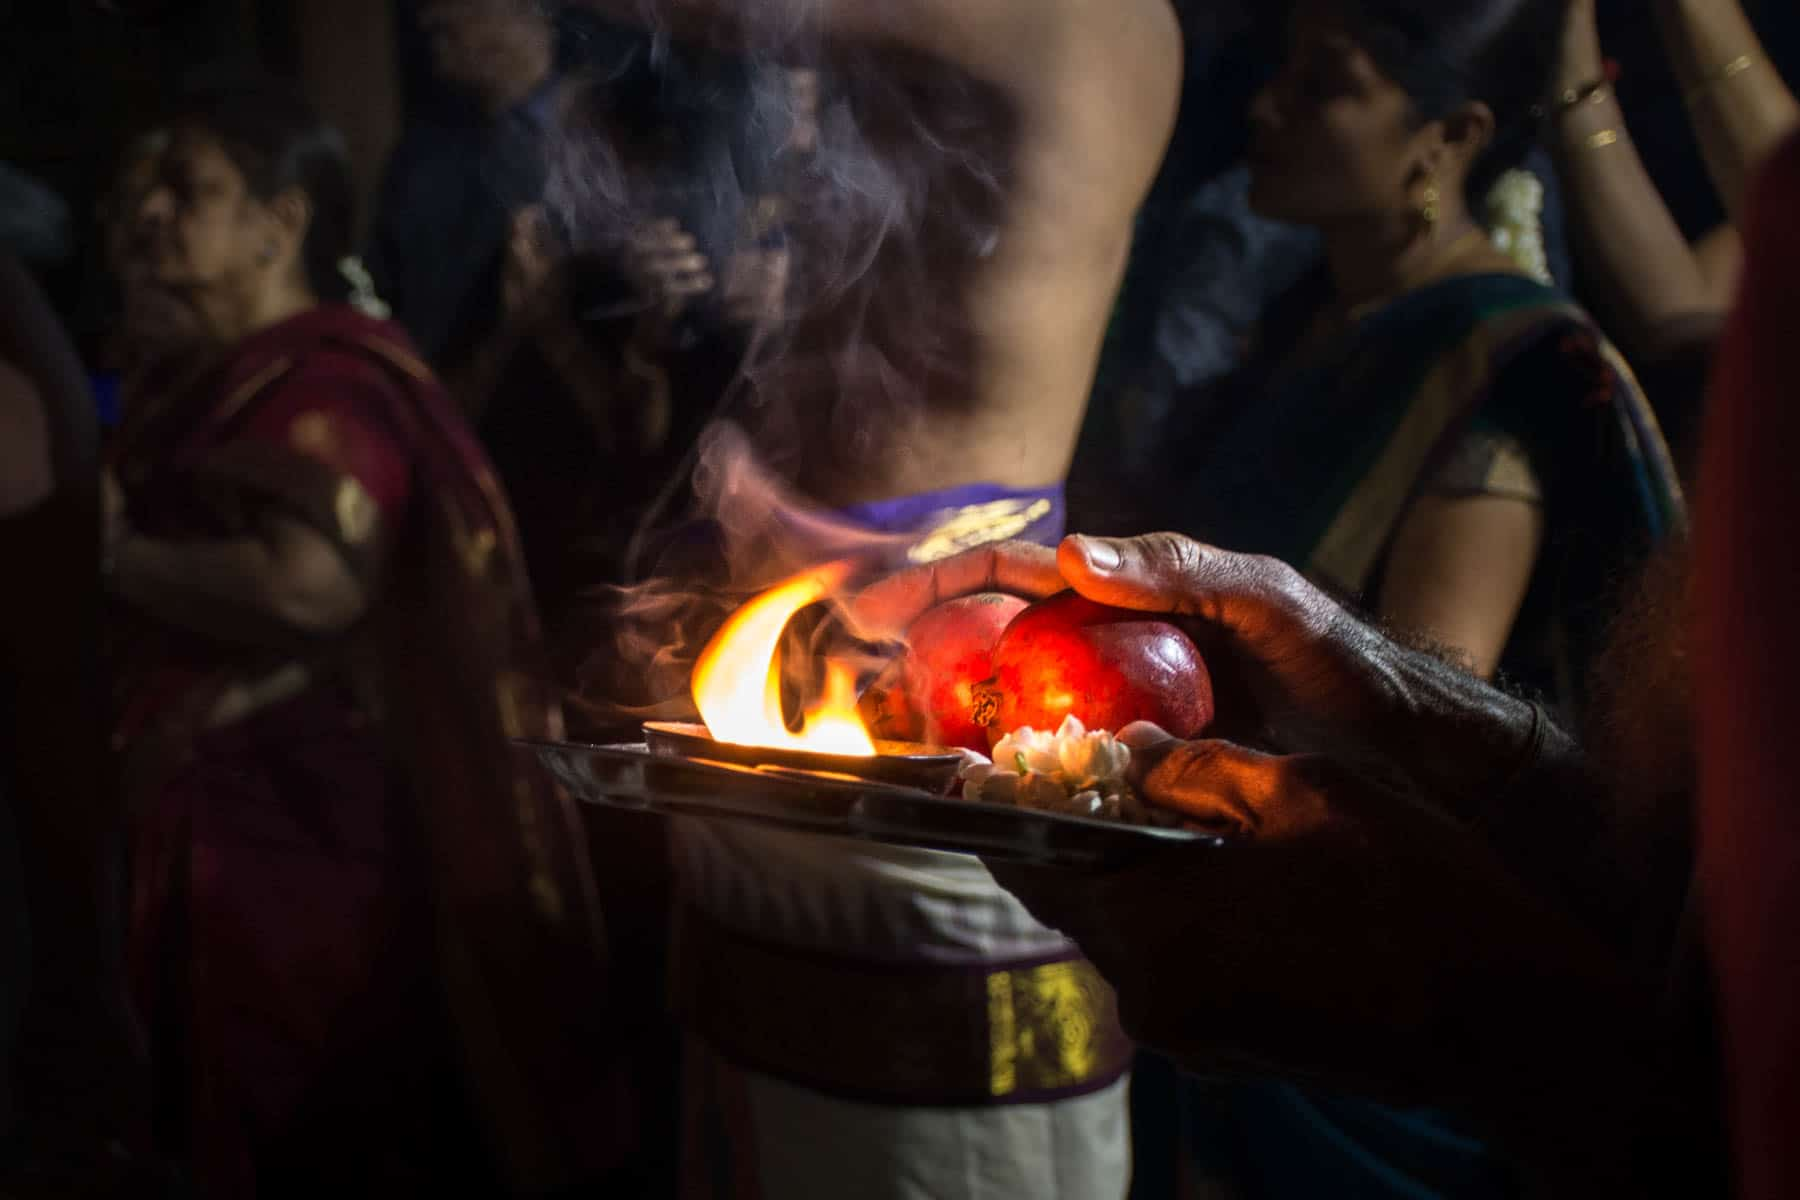 An offering for the god while celebrating Diwali in Chennai, India - Lost With Purpose